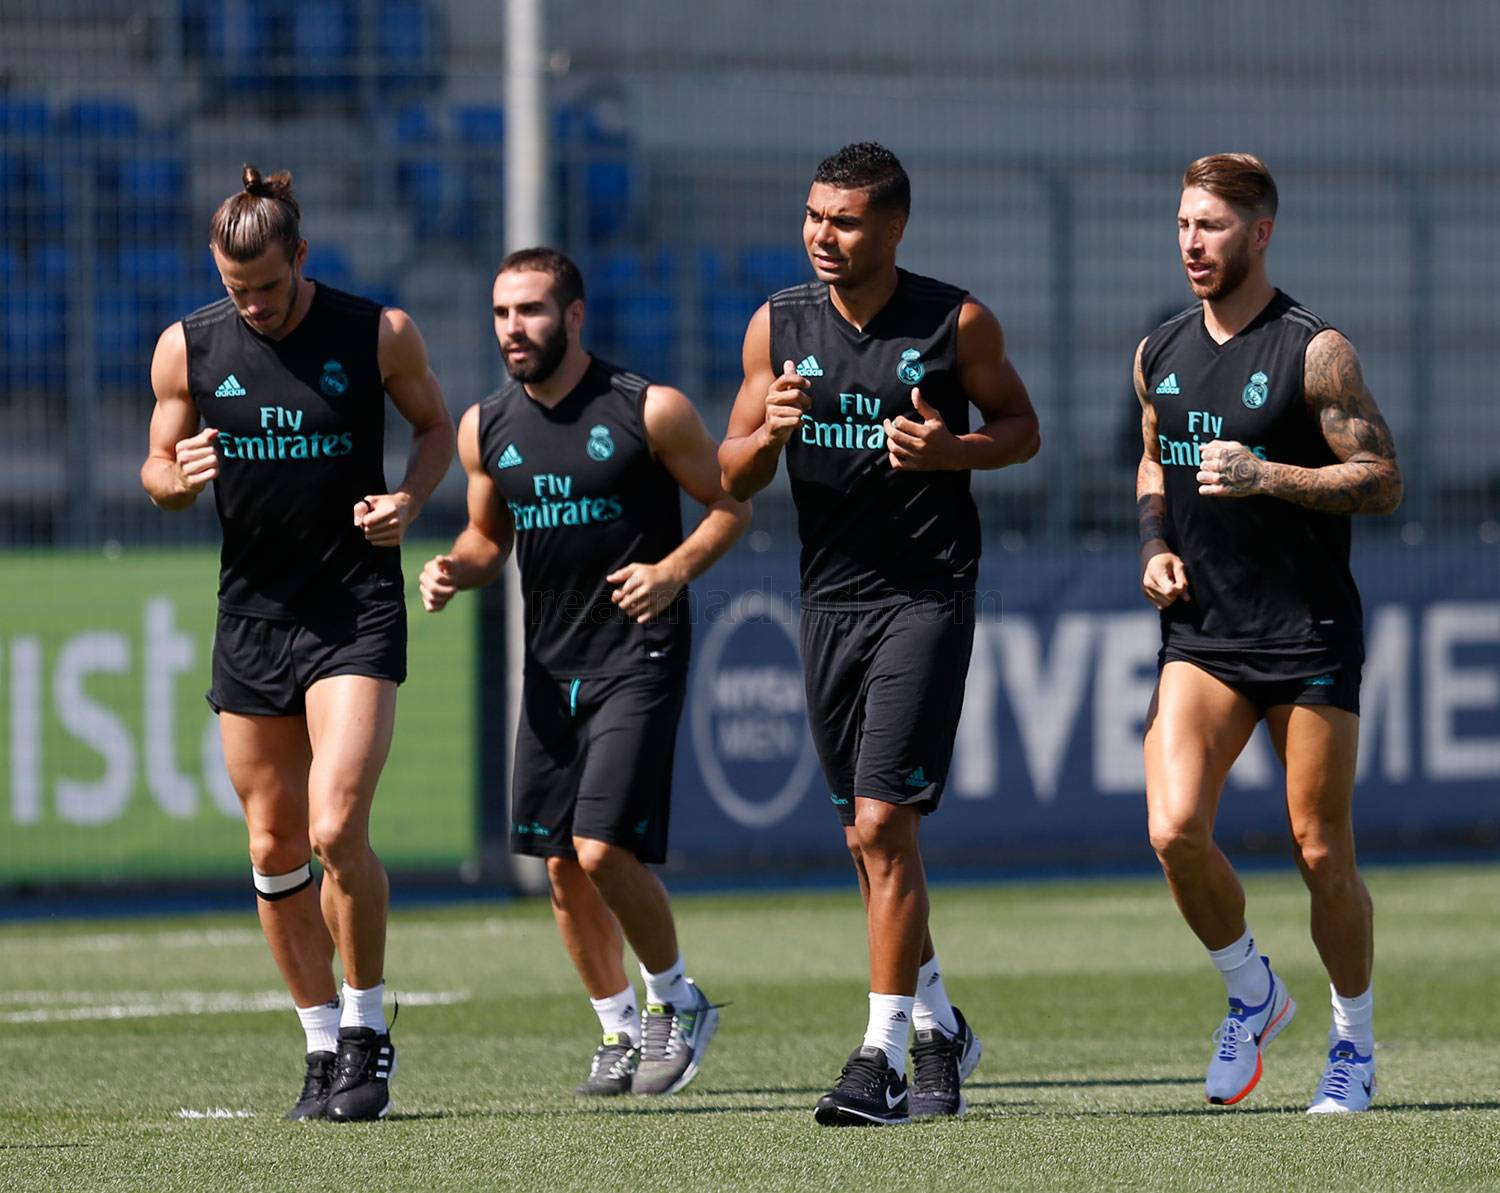 Real Madrid - Entrenamiento del Real Madrid - 14-08-2017